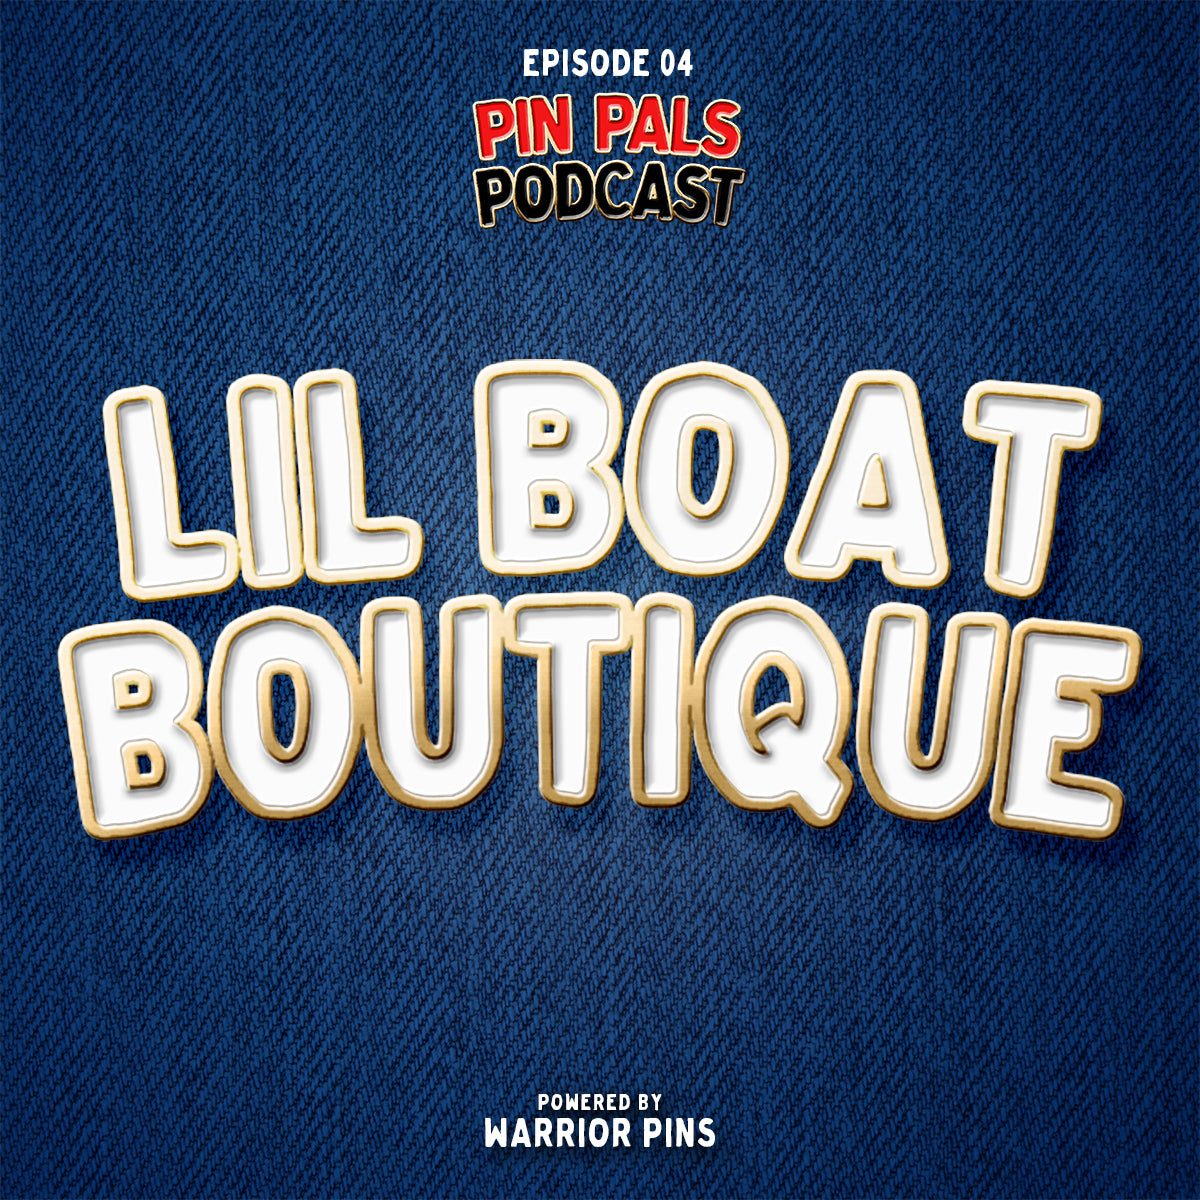 Ep 4 - Lil Boat Boutique